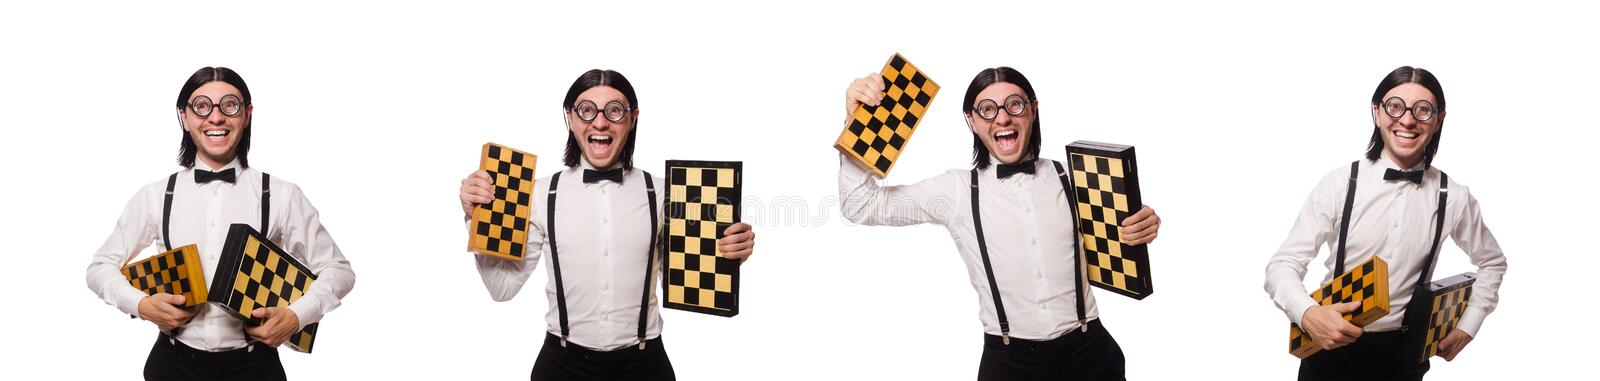 The nerd chess player isolated on white stock photography